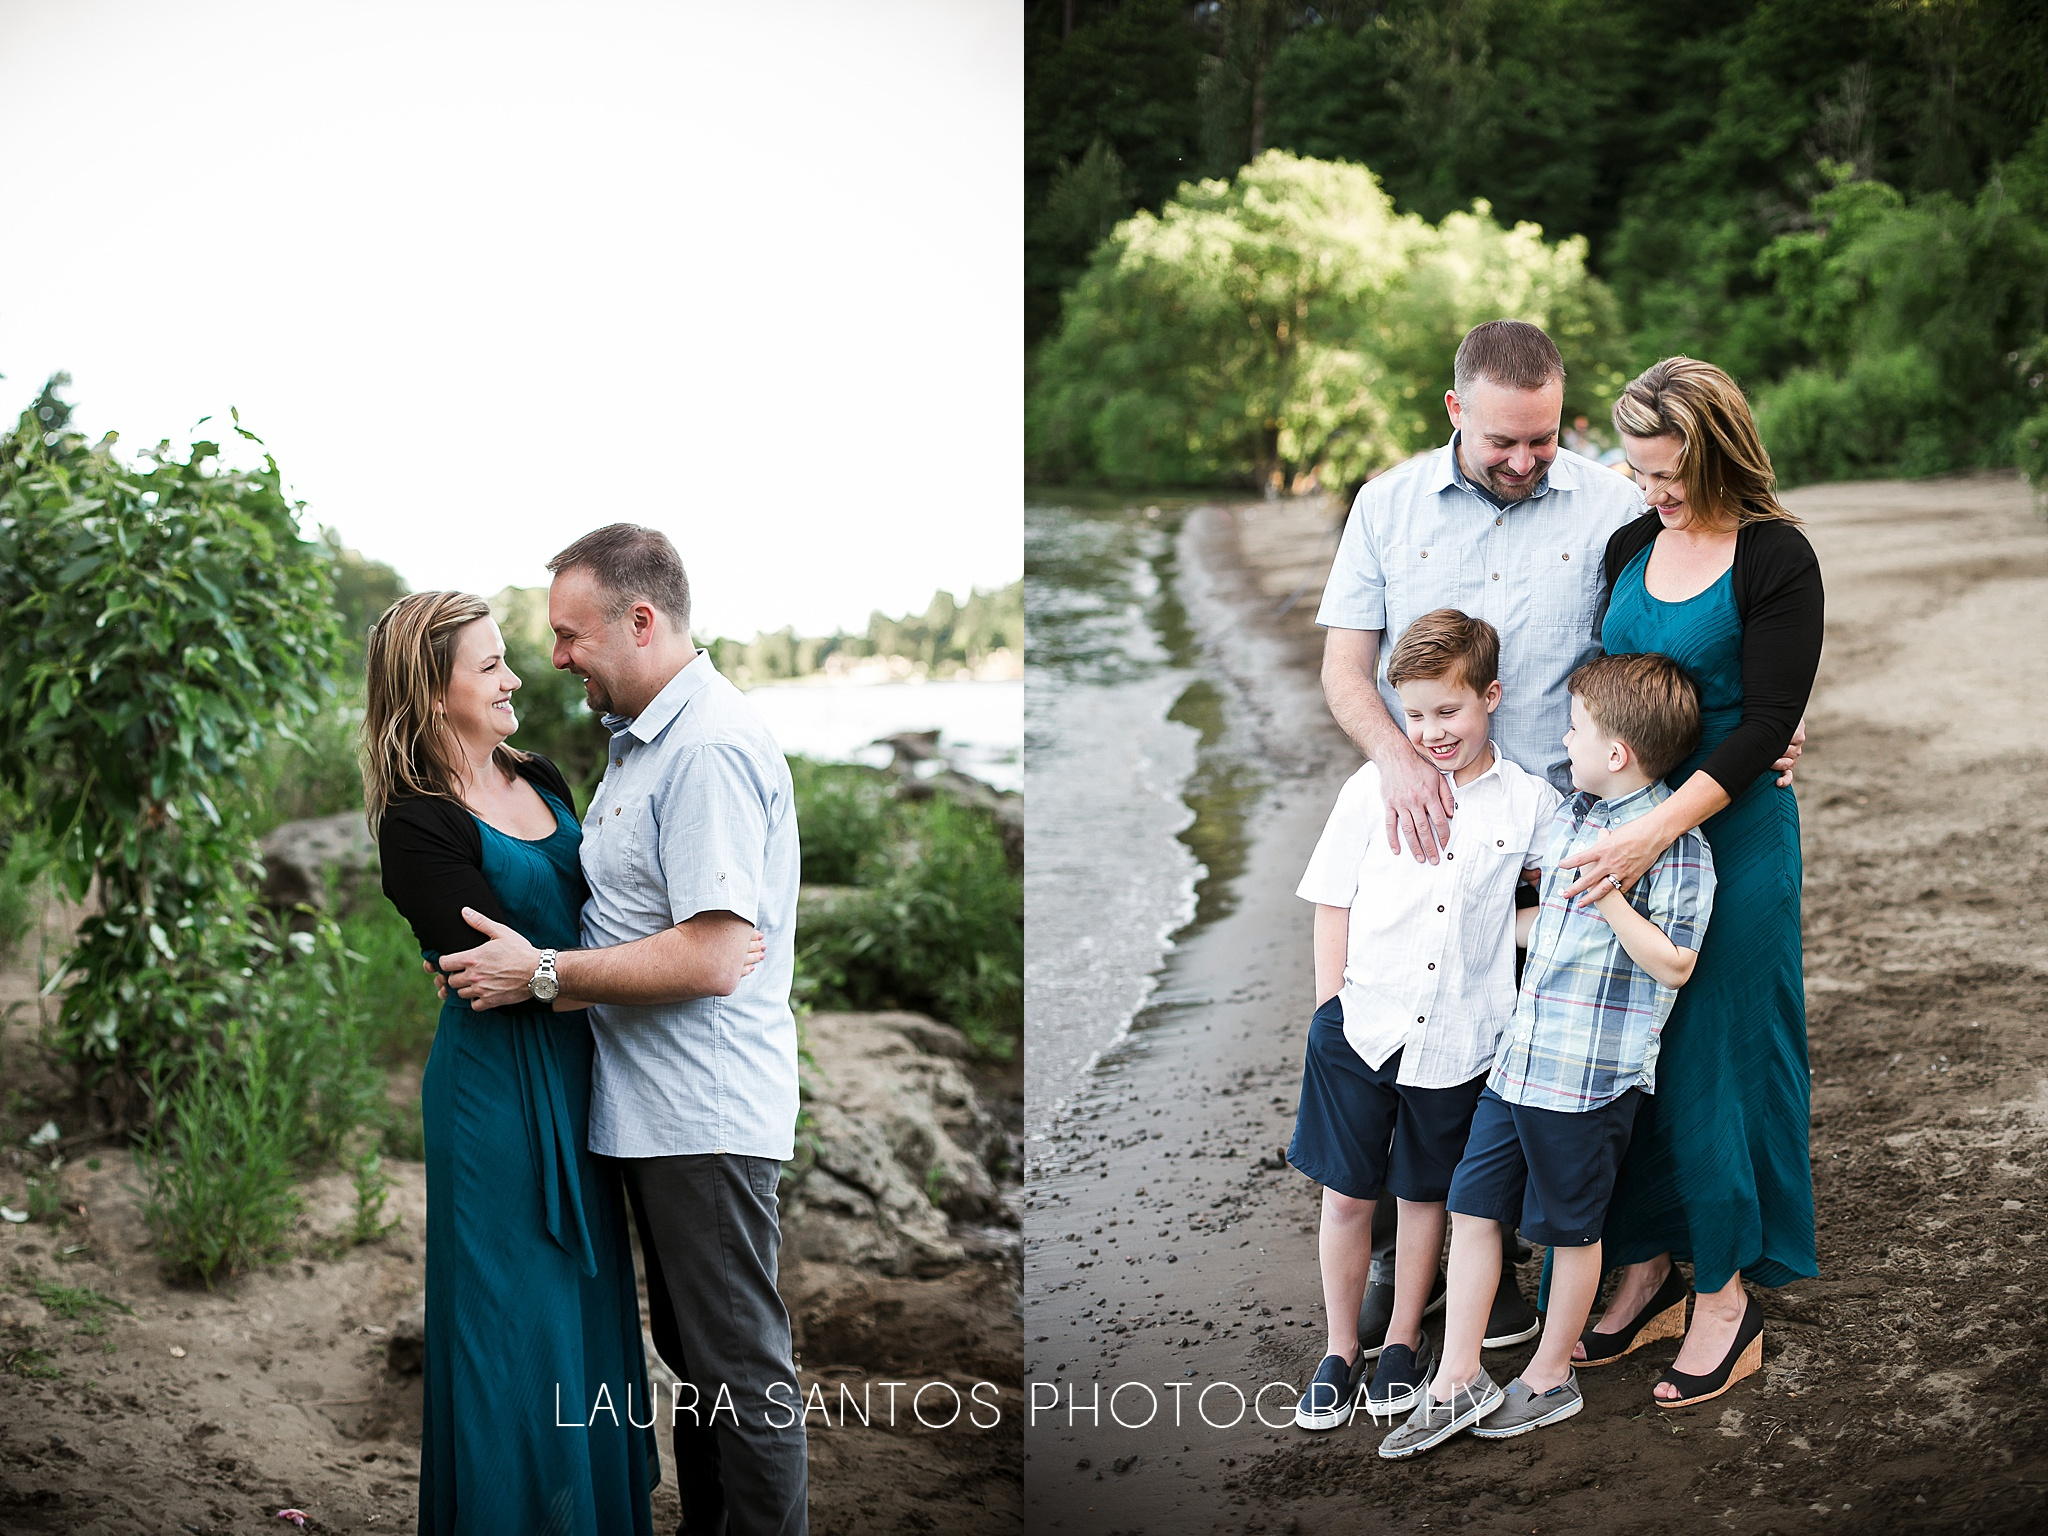 Laura Santos Photography Portland Oregon Family Photographer_1014.jpg